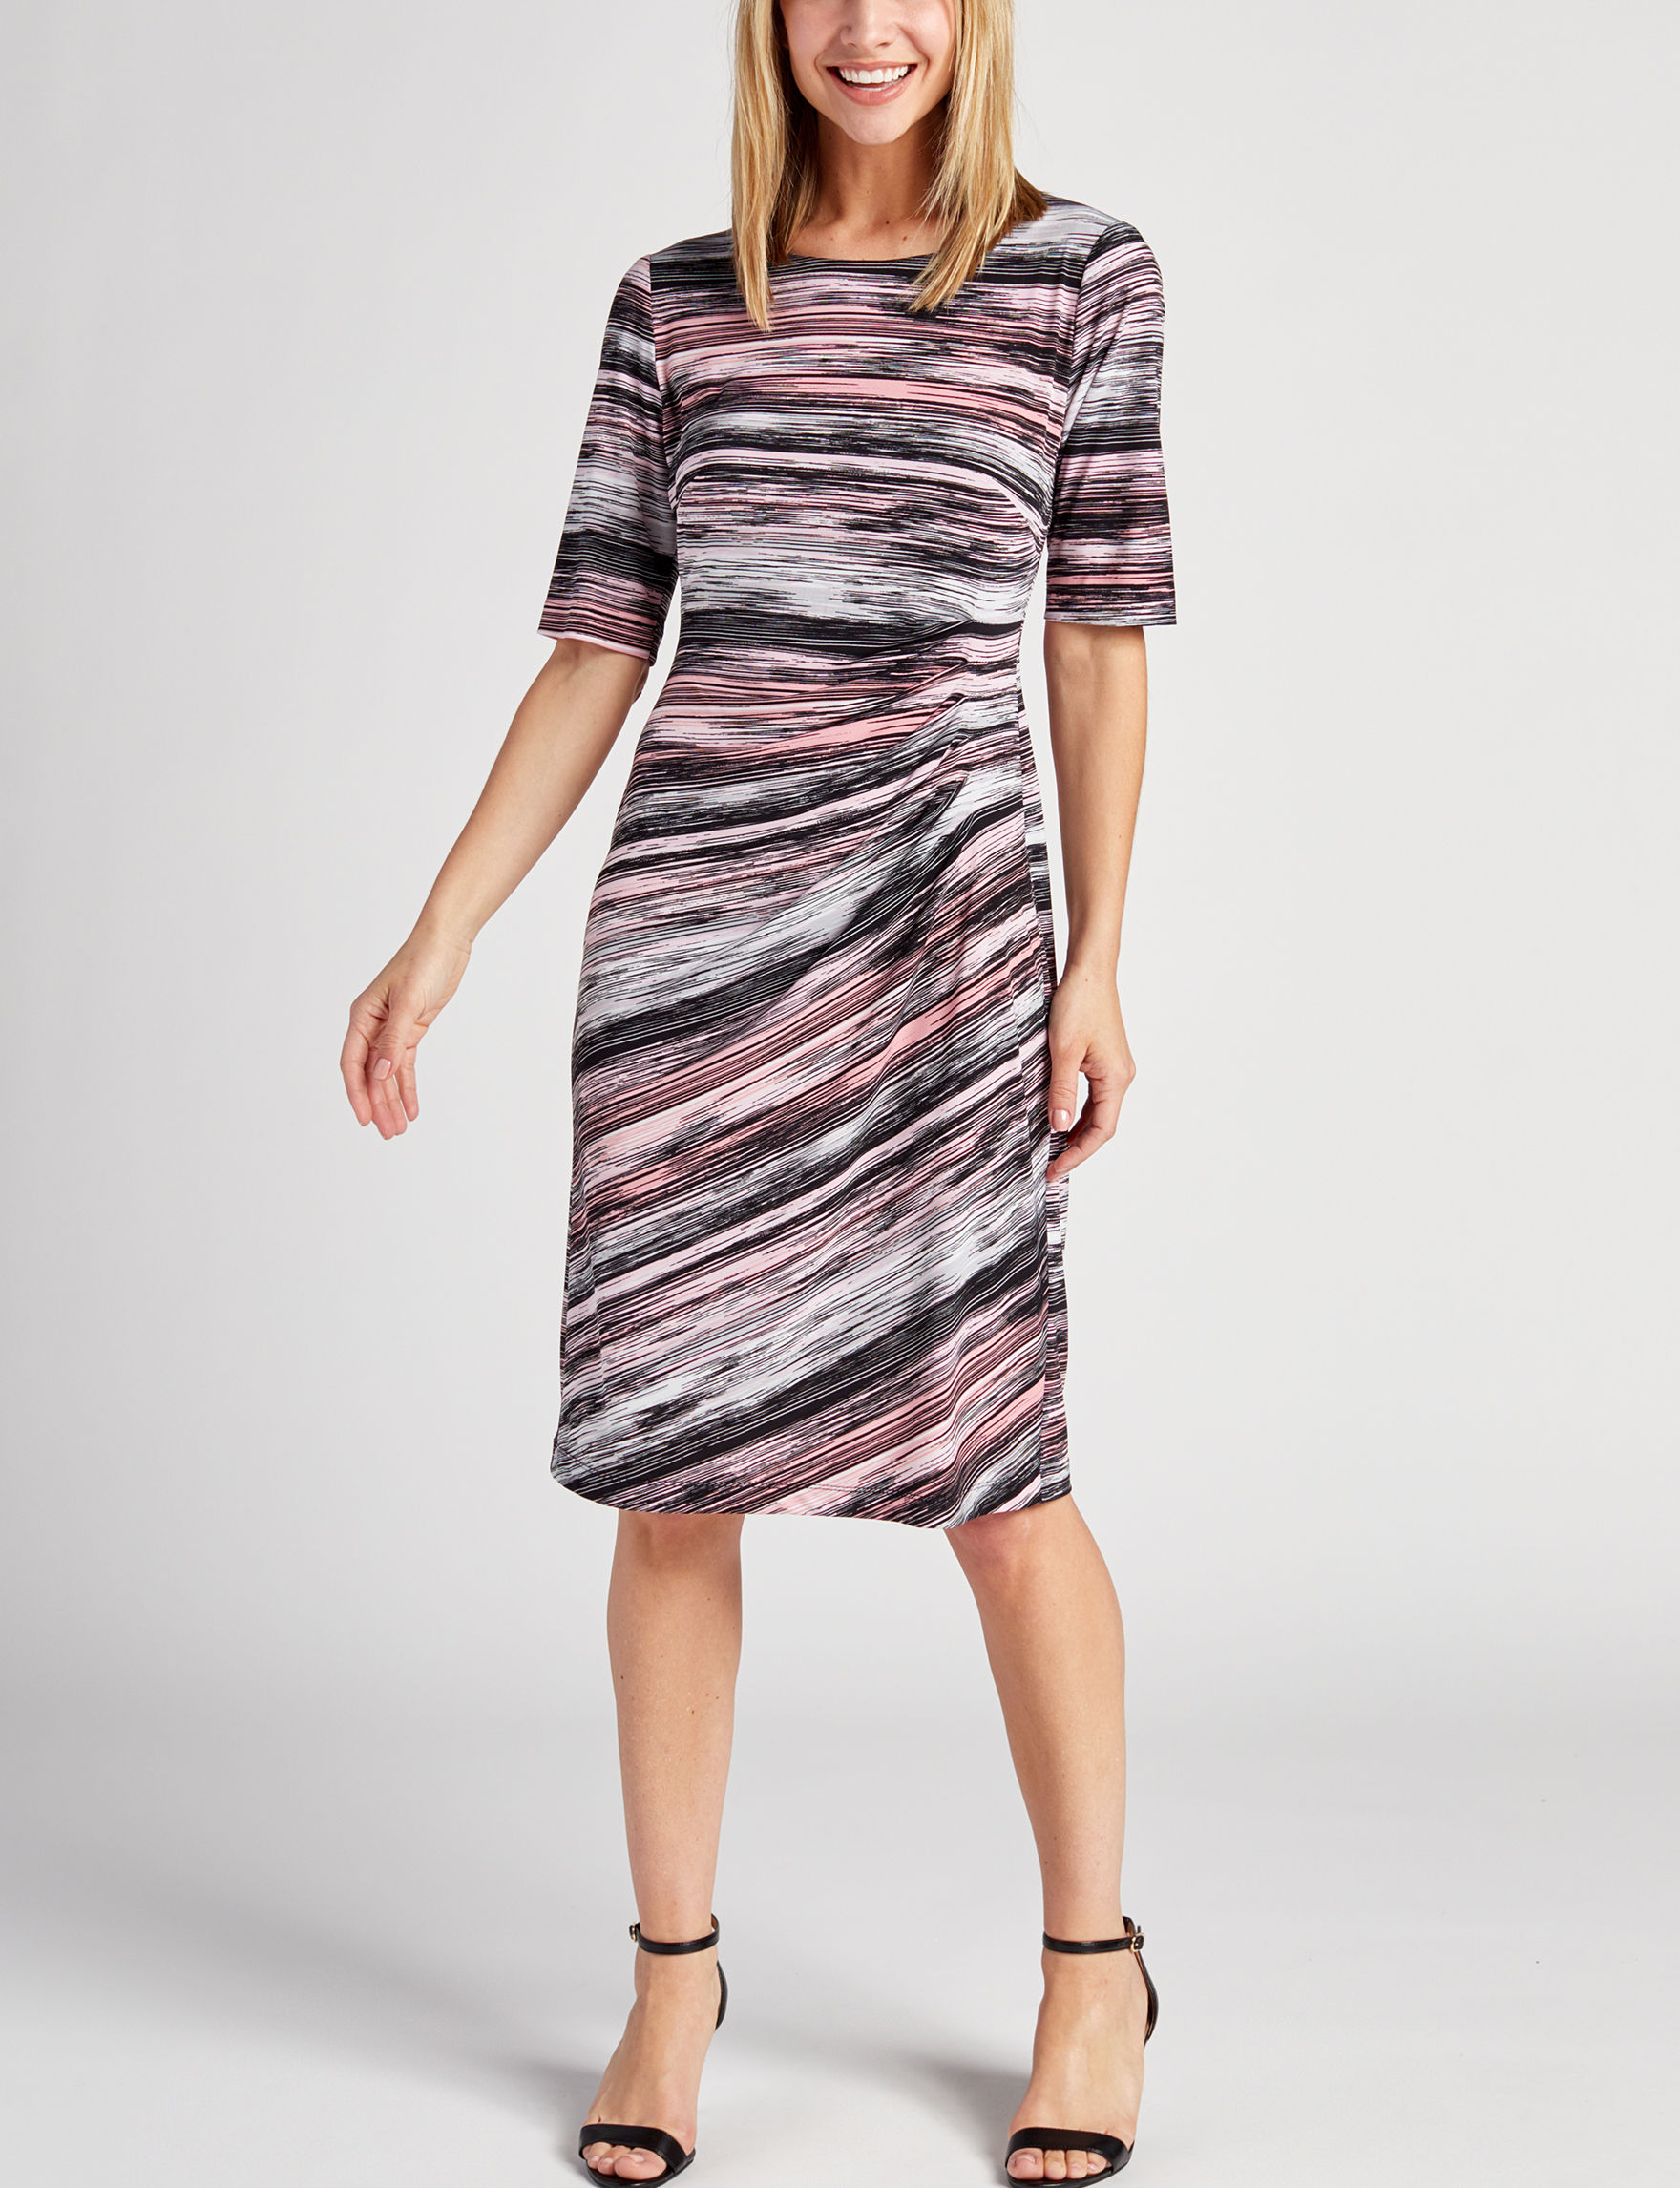 Connected Black Multi Everyday & Casual Sheath Dresses